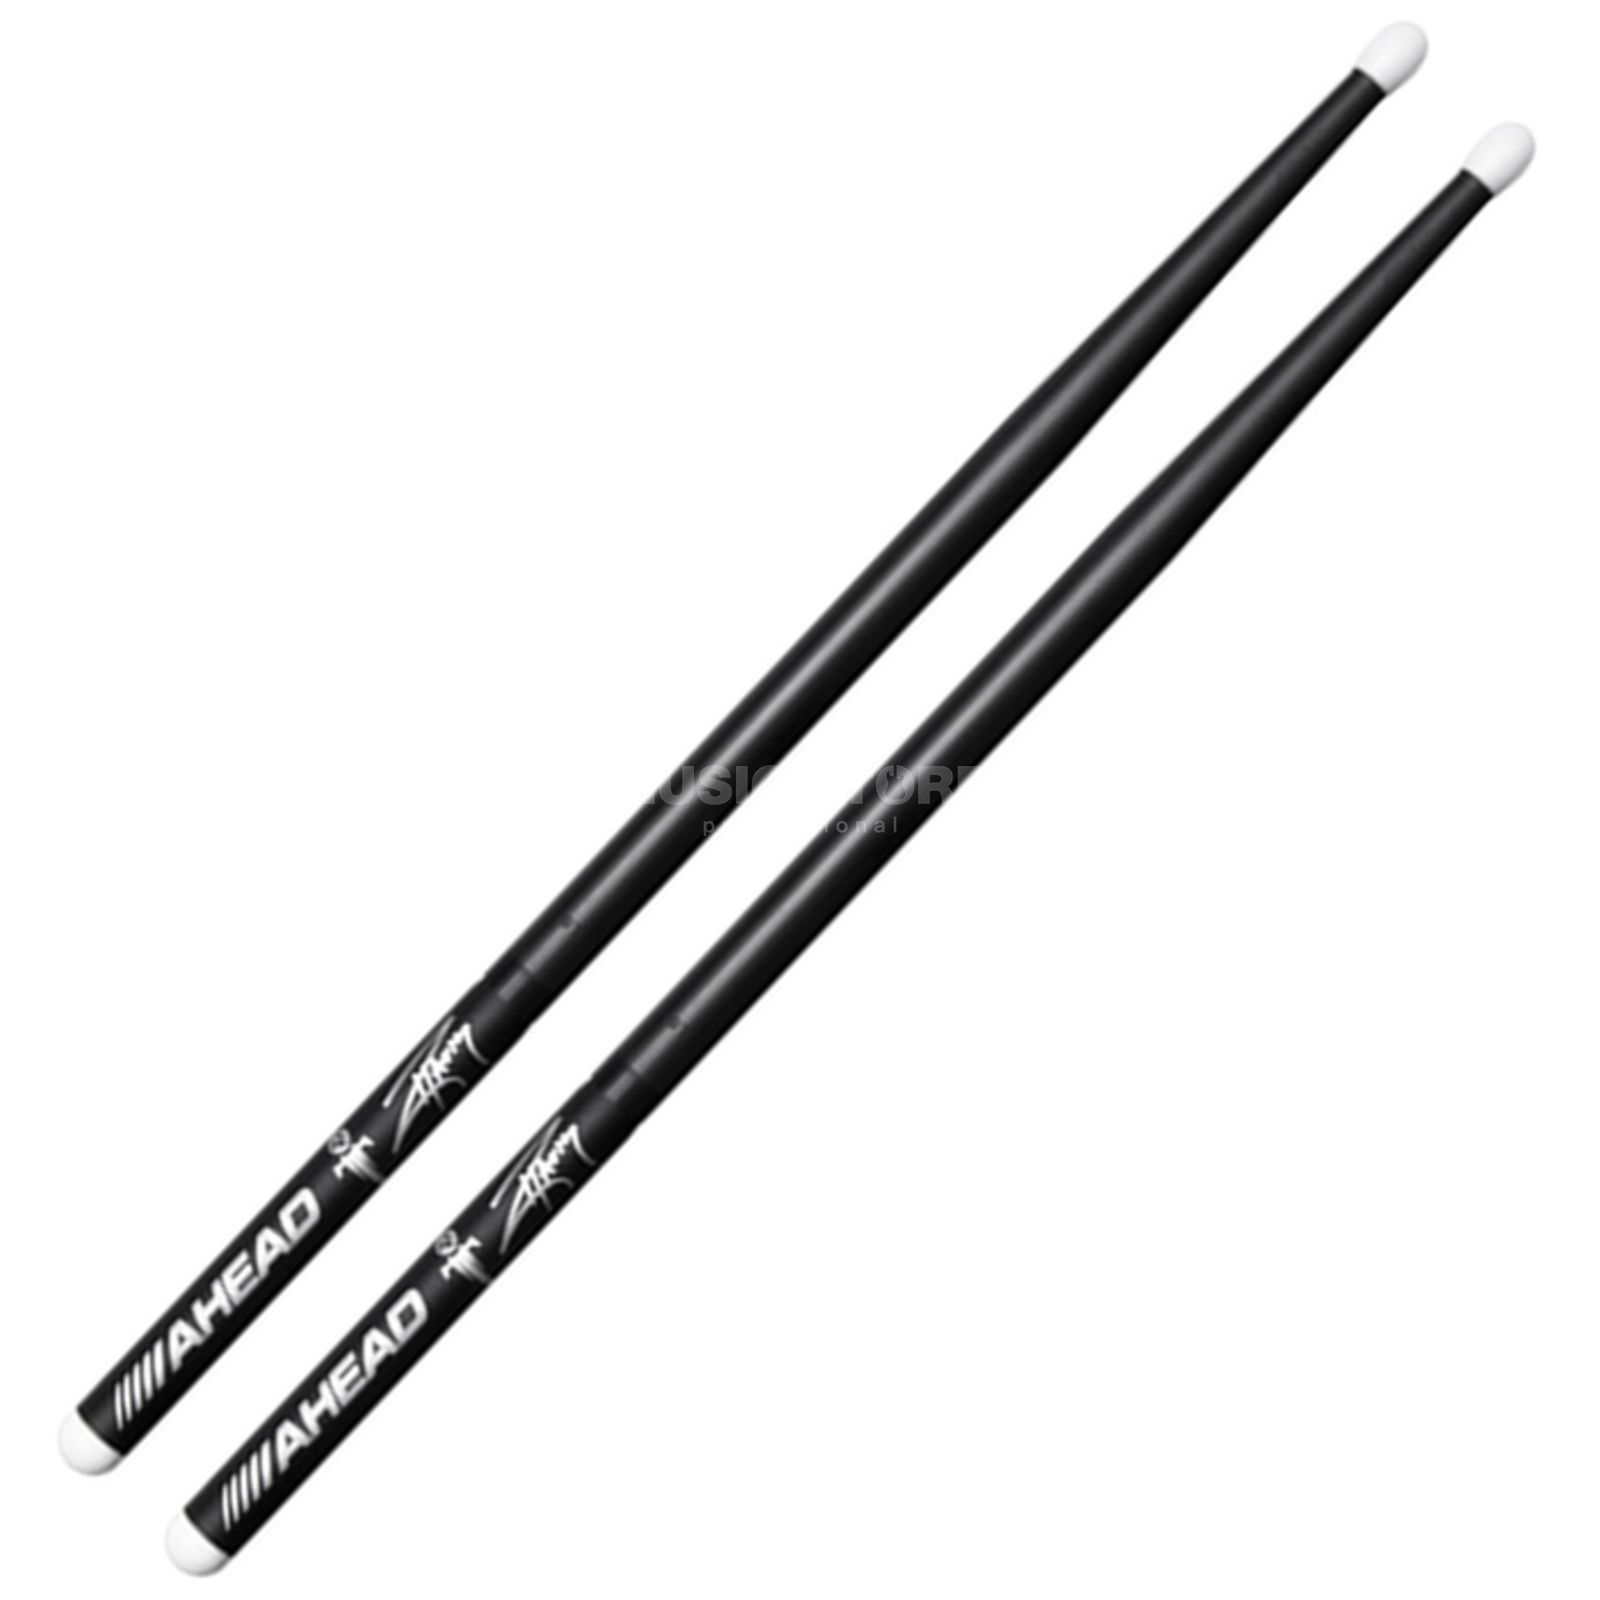 Ahead Sticks TSR Travis Smith Alu-Sticks Medium Taper Produktbild